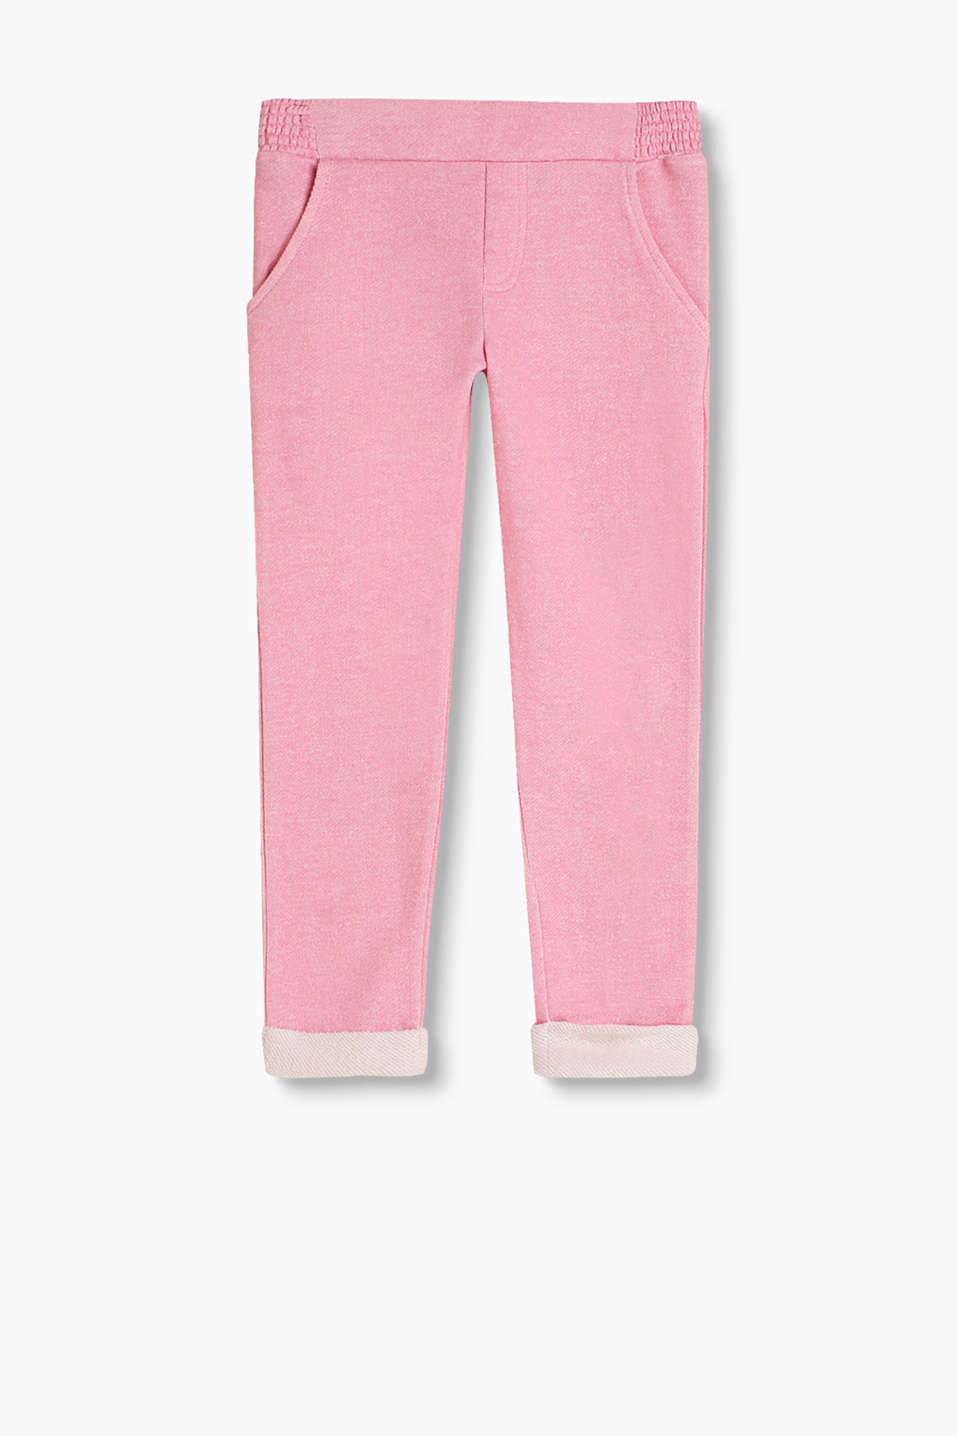 Melange tracksuit bottoms with contrast colour details, 100% cotton